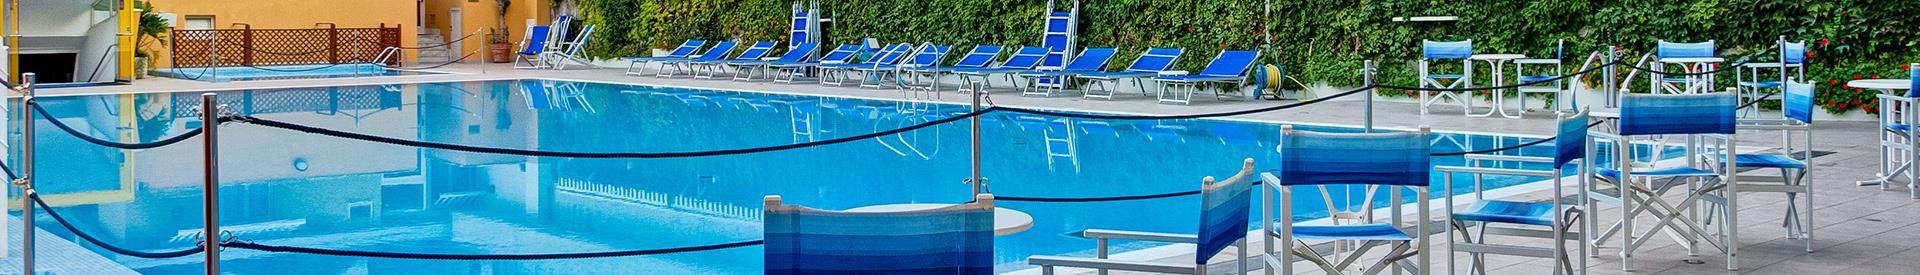 Looking for a hotel for your stay in TEMP_City (XX)? Book/reserve at the Best Western Hotel La Solara